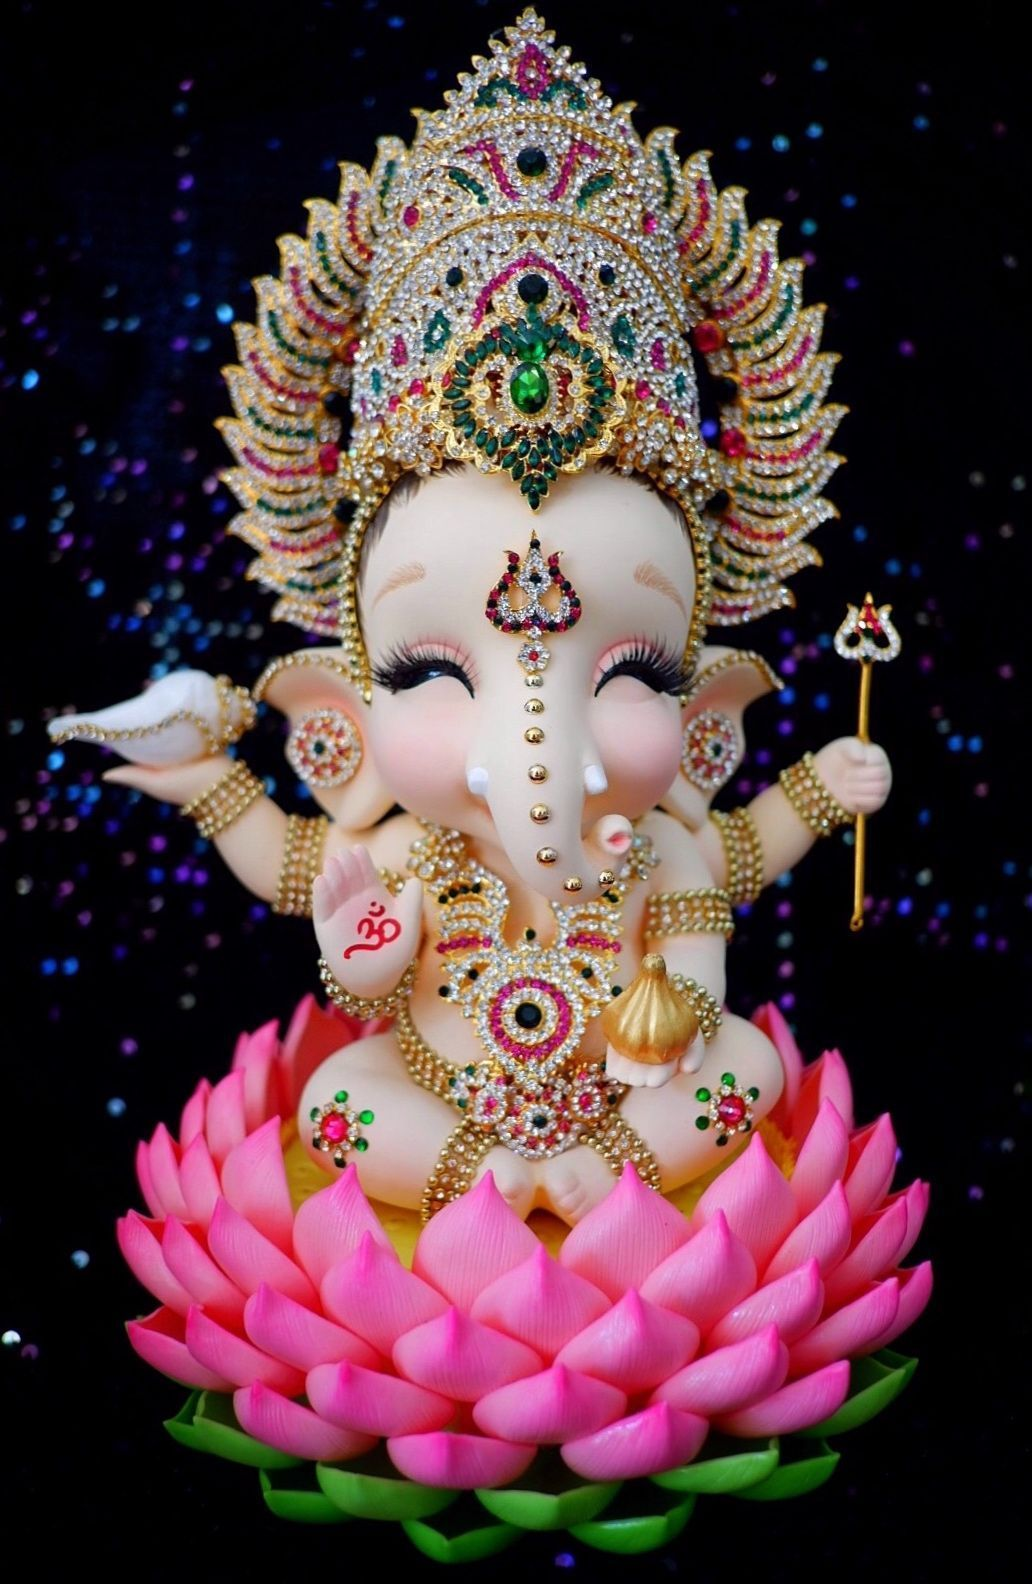 Paintings Top 20 Photos Of Cute Ganesha To Use For Instagram And Whatsapp Story उ गल स भ Happy Ganesh Chaturthi Images Lord Ganesha Paintings Baby Ganesha